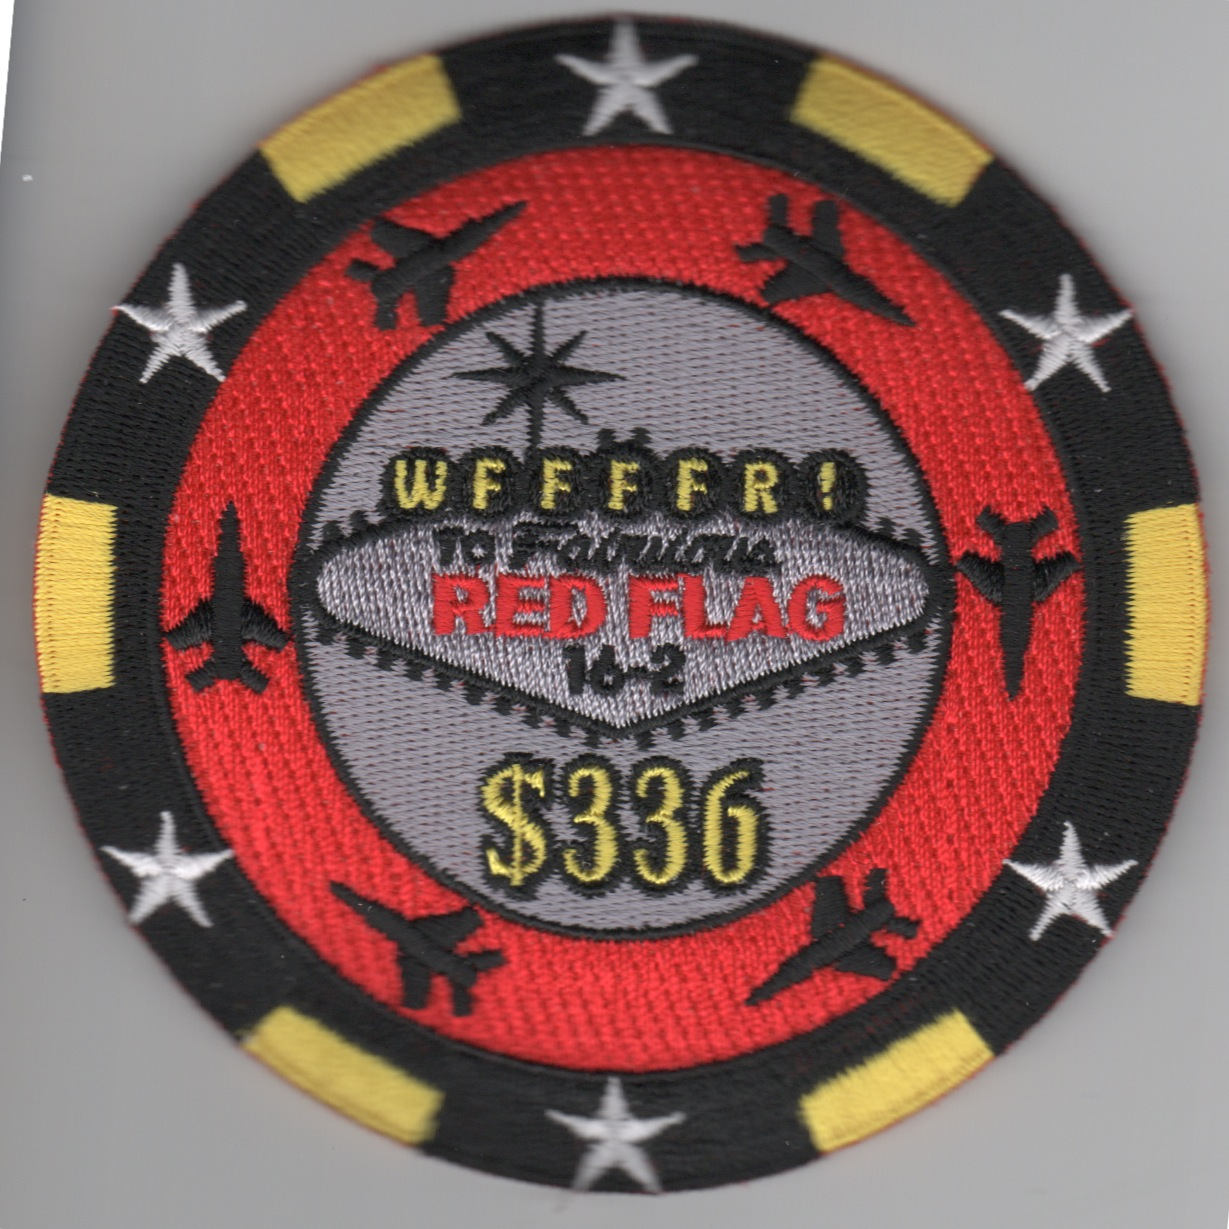 336FS 'Red Flag 16-3' Poker Chip Patch